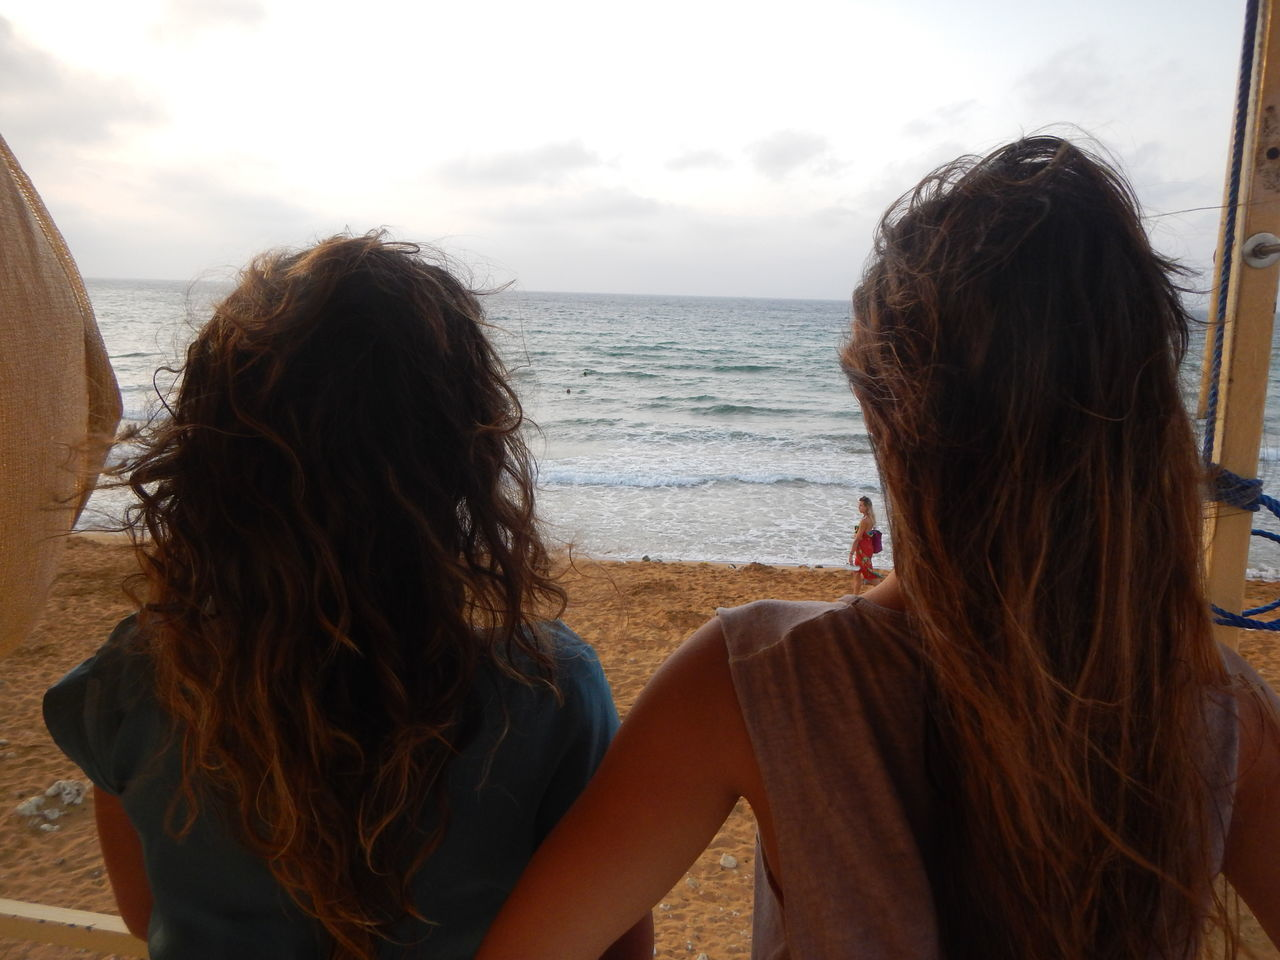 sea, water, horizon over water, two people, beach, rear view, real people, leisure activity, long hair, nature, outdoors, sand, sky, tranquility, scenics, day, standing, togetherness, beauty in nature, friendship